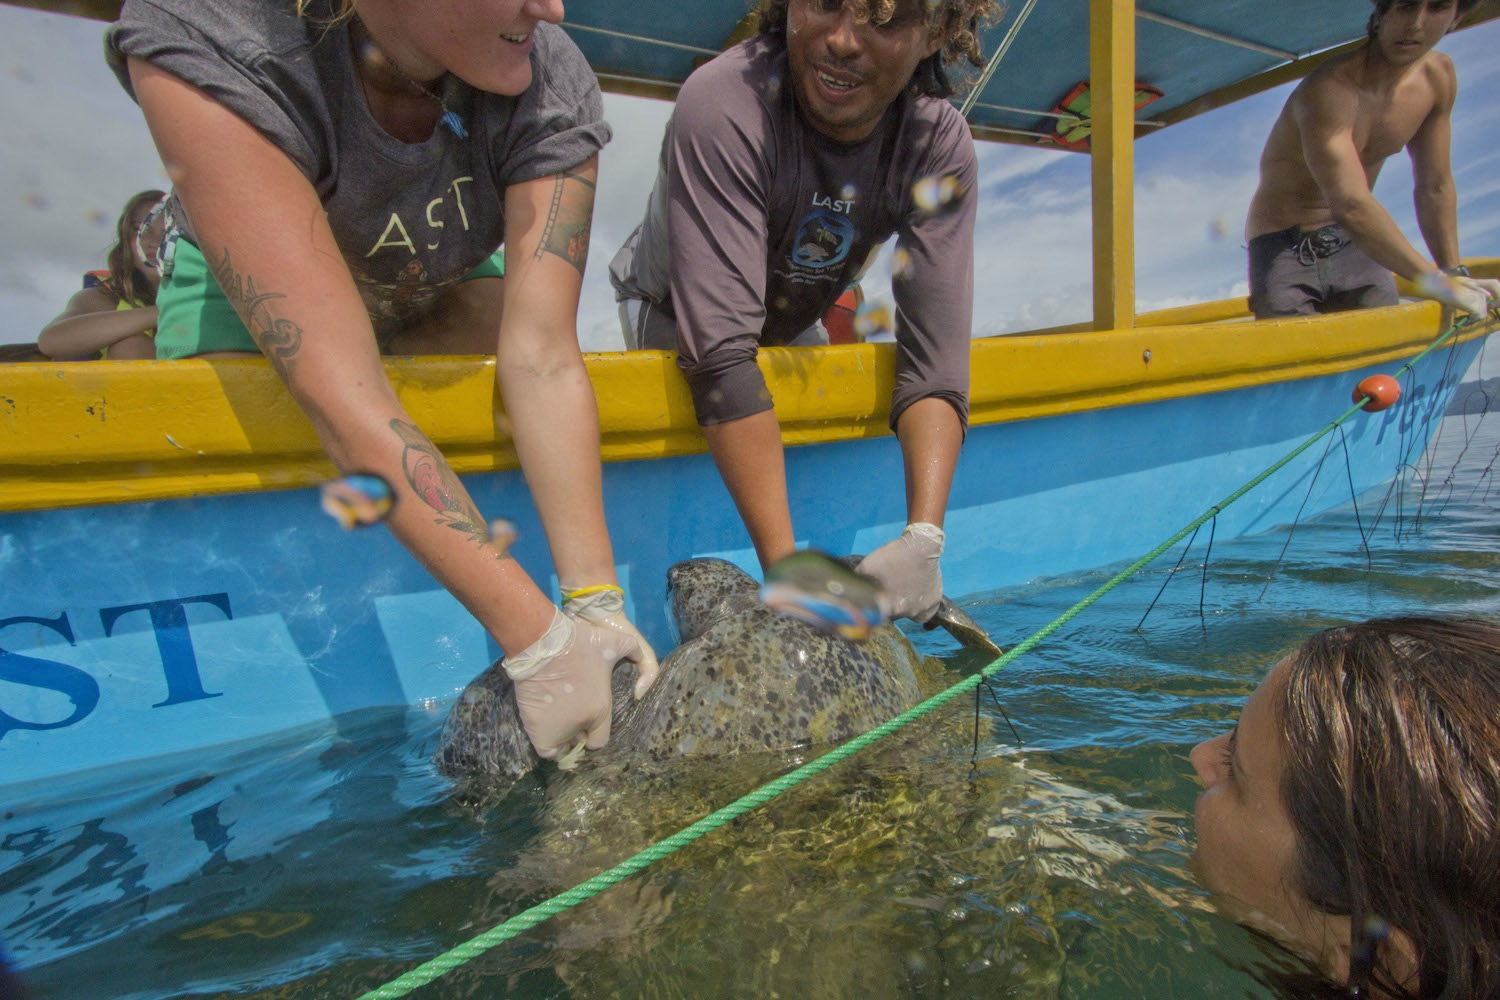 Help researchers set nets to catch the turtles